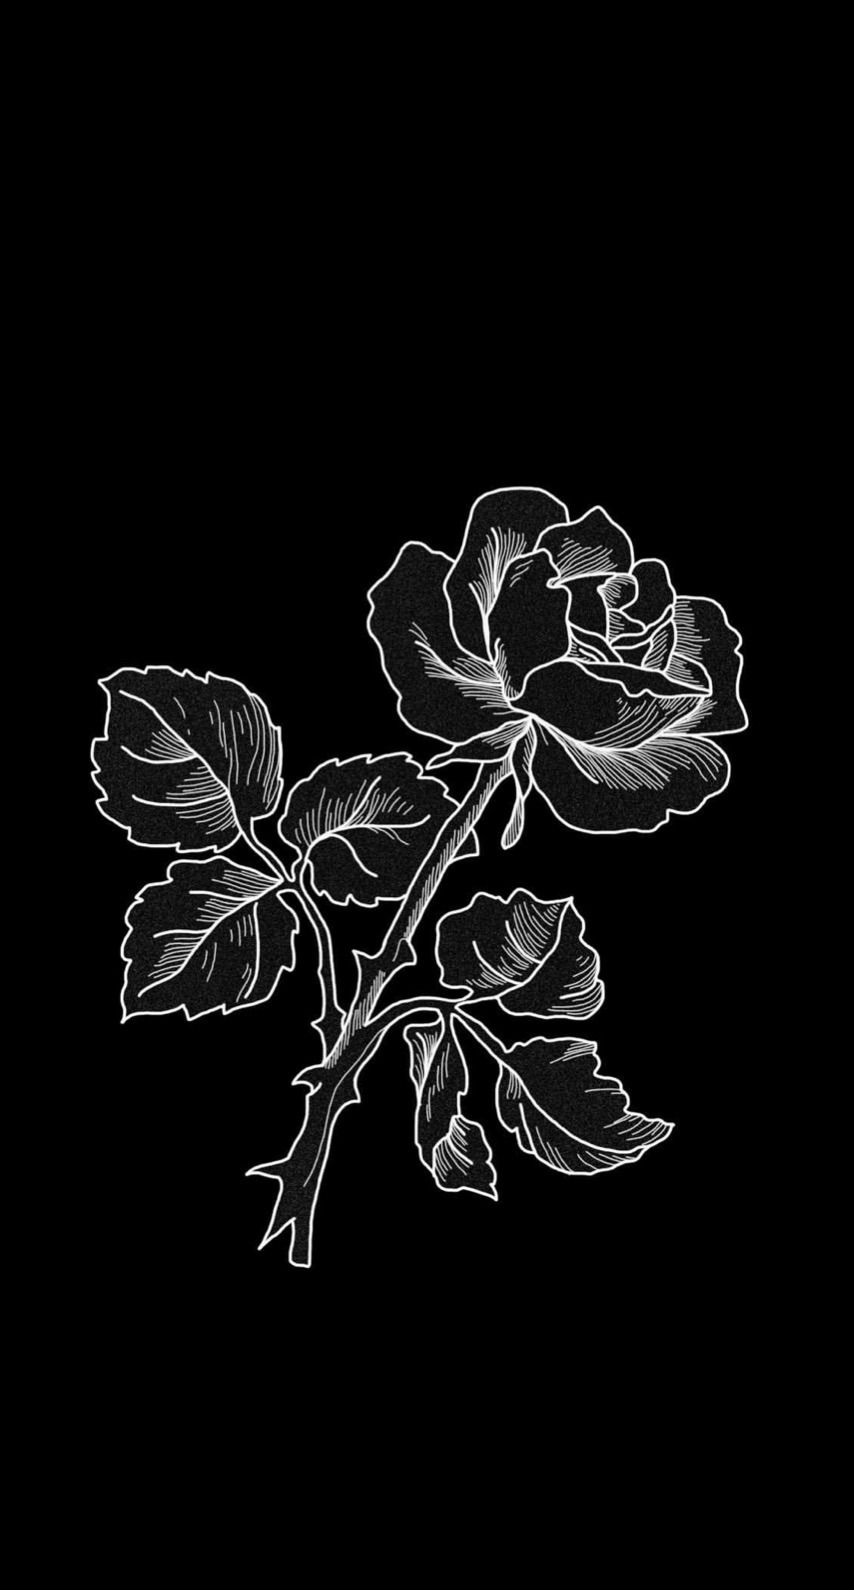 Please Like And Re Blog If You Use Thanks Black Aesthetic Wallpaper Aesthetic Iphone Wallpaper Iphone Background Wallpaper